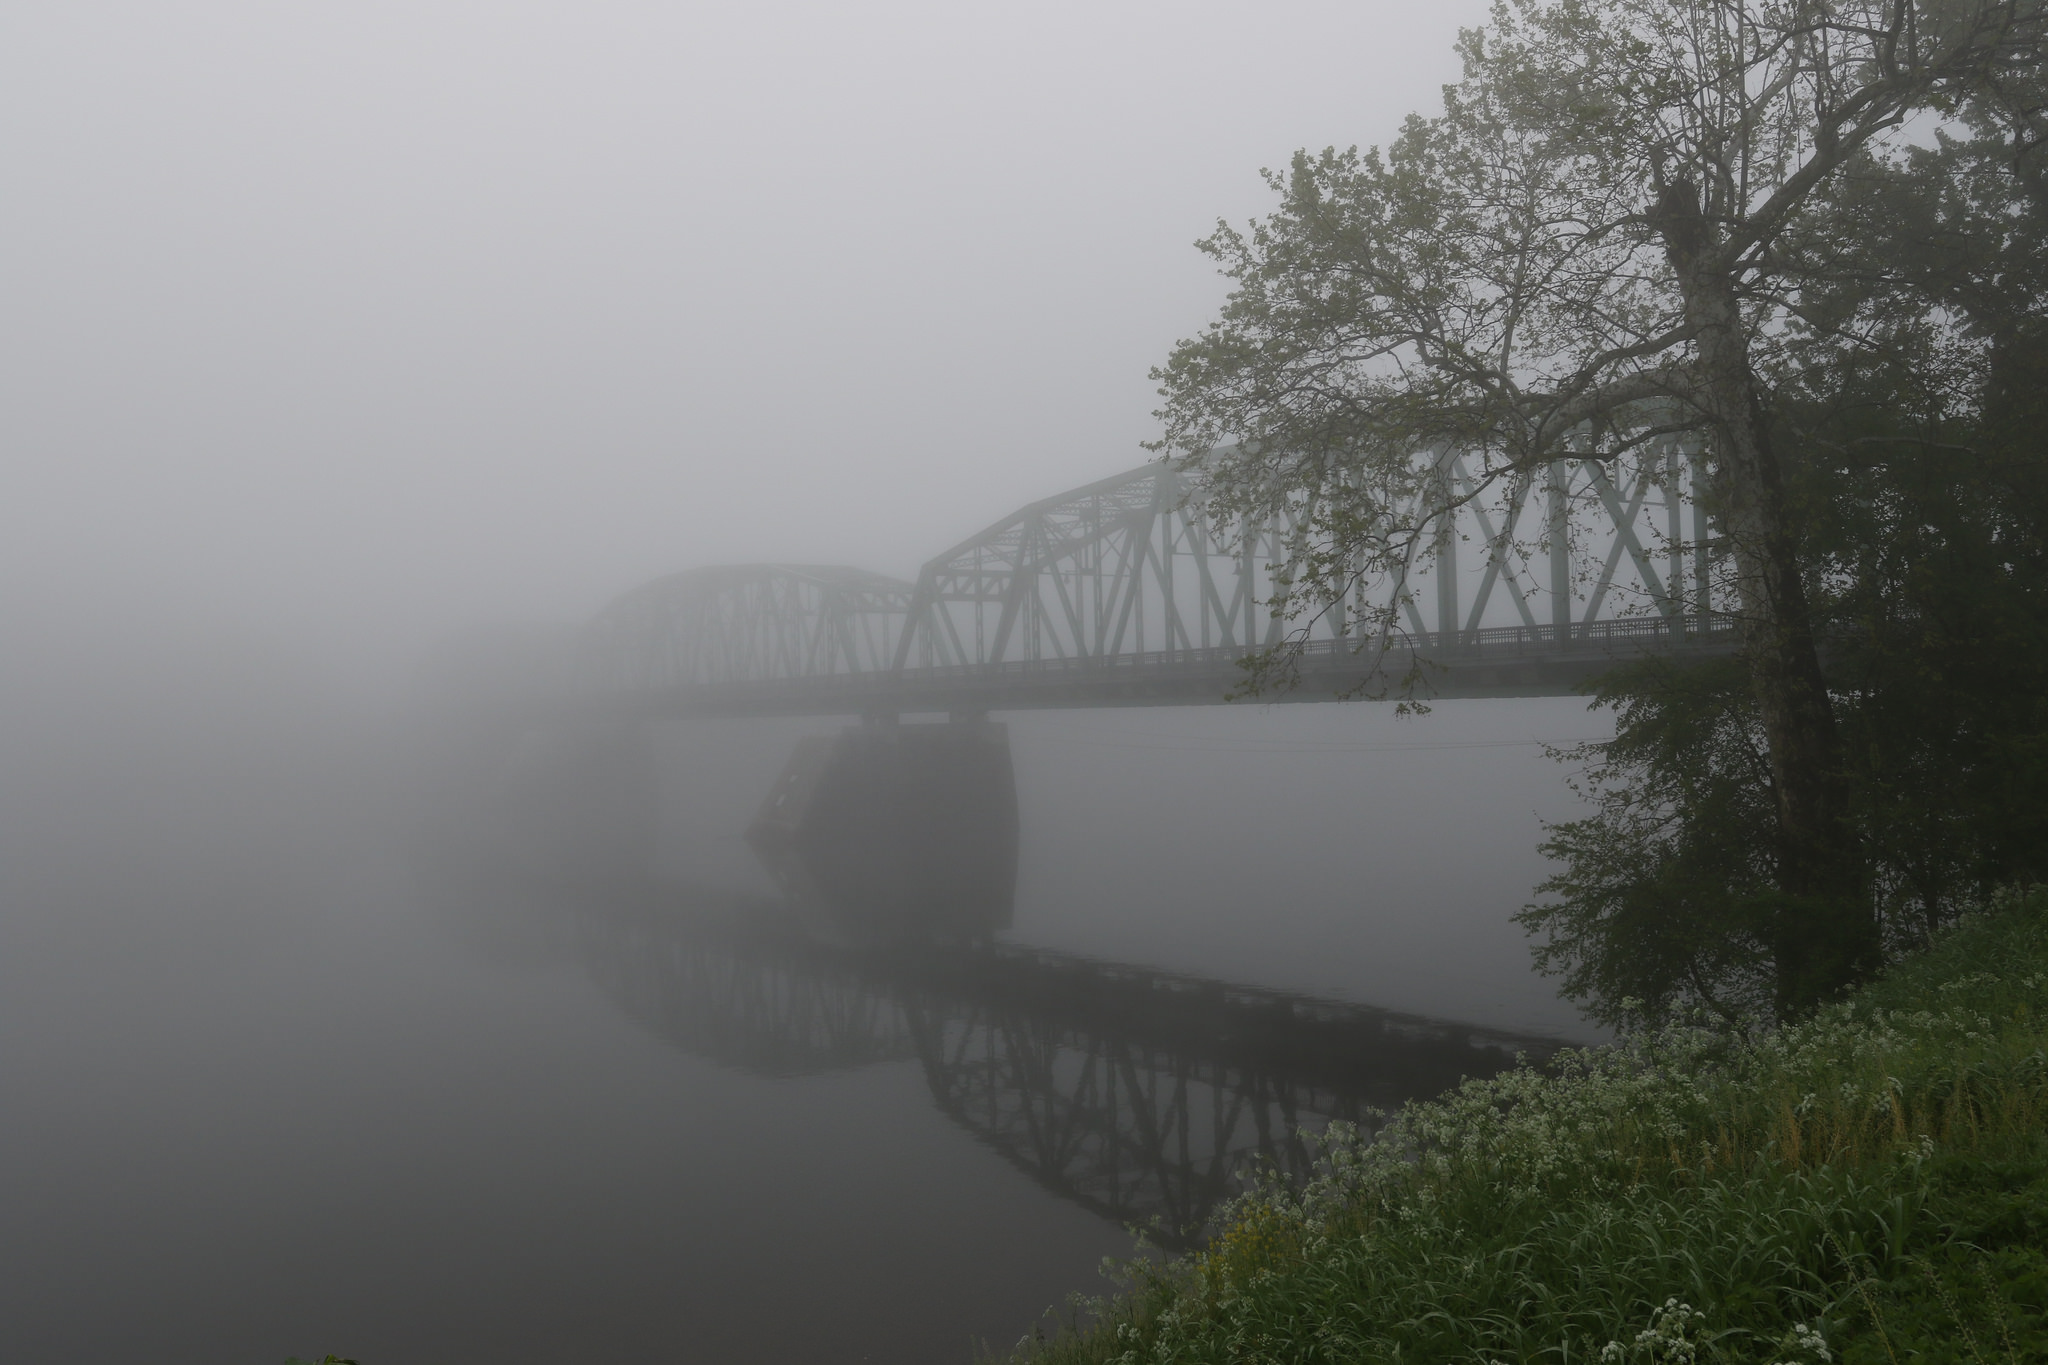 Another foggy morning in Milford